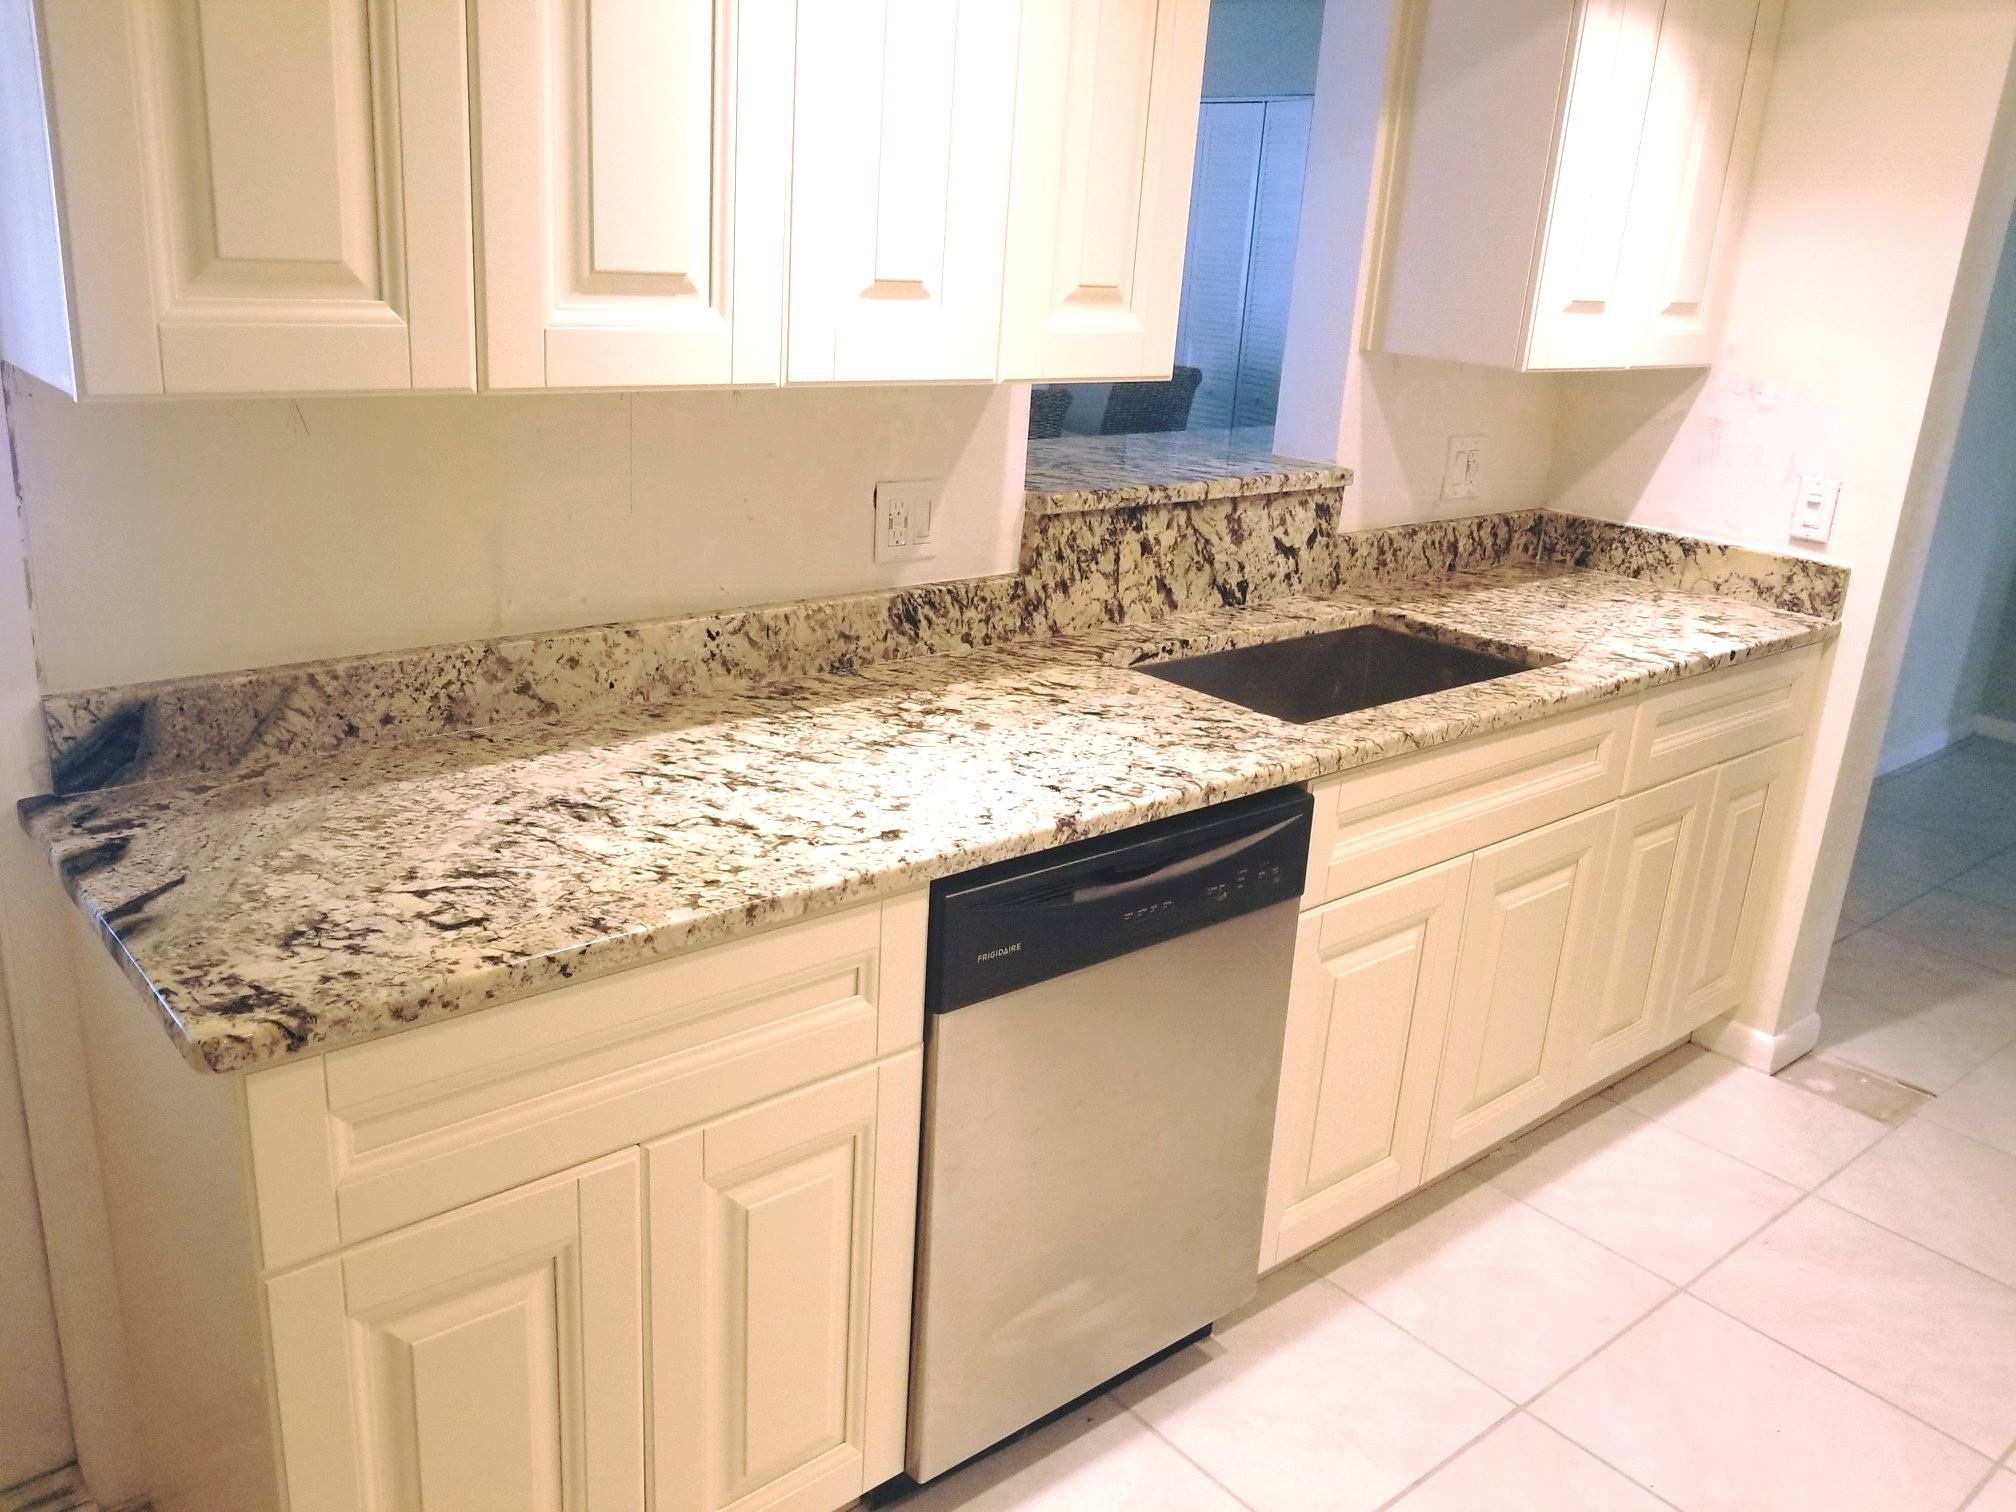 Beautifully Designed Polished Kitchen Countertop Using Pears White Color Granite Installed By Kb Fa Kitchen Countertops Natural Stone Countertops Countertops